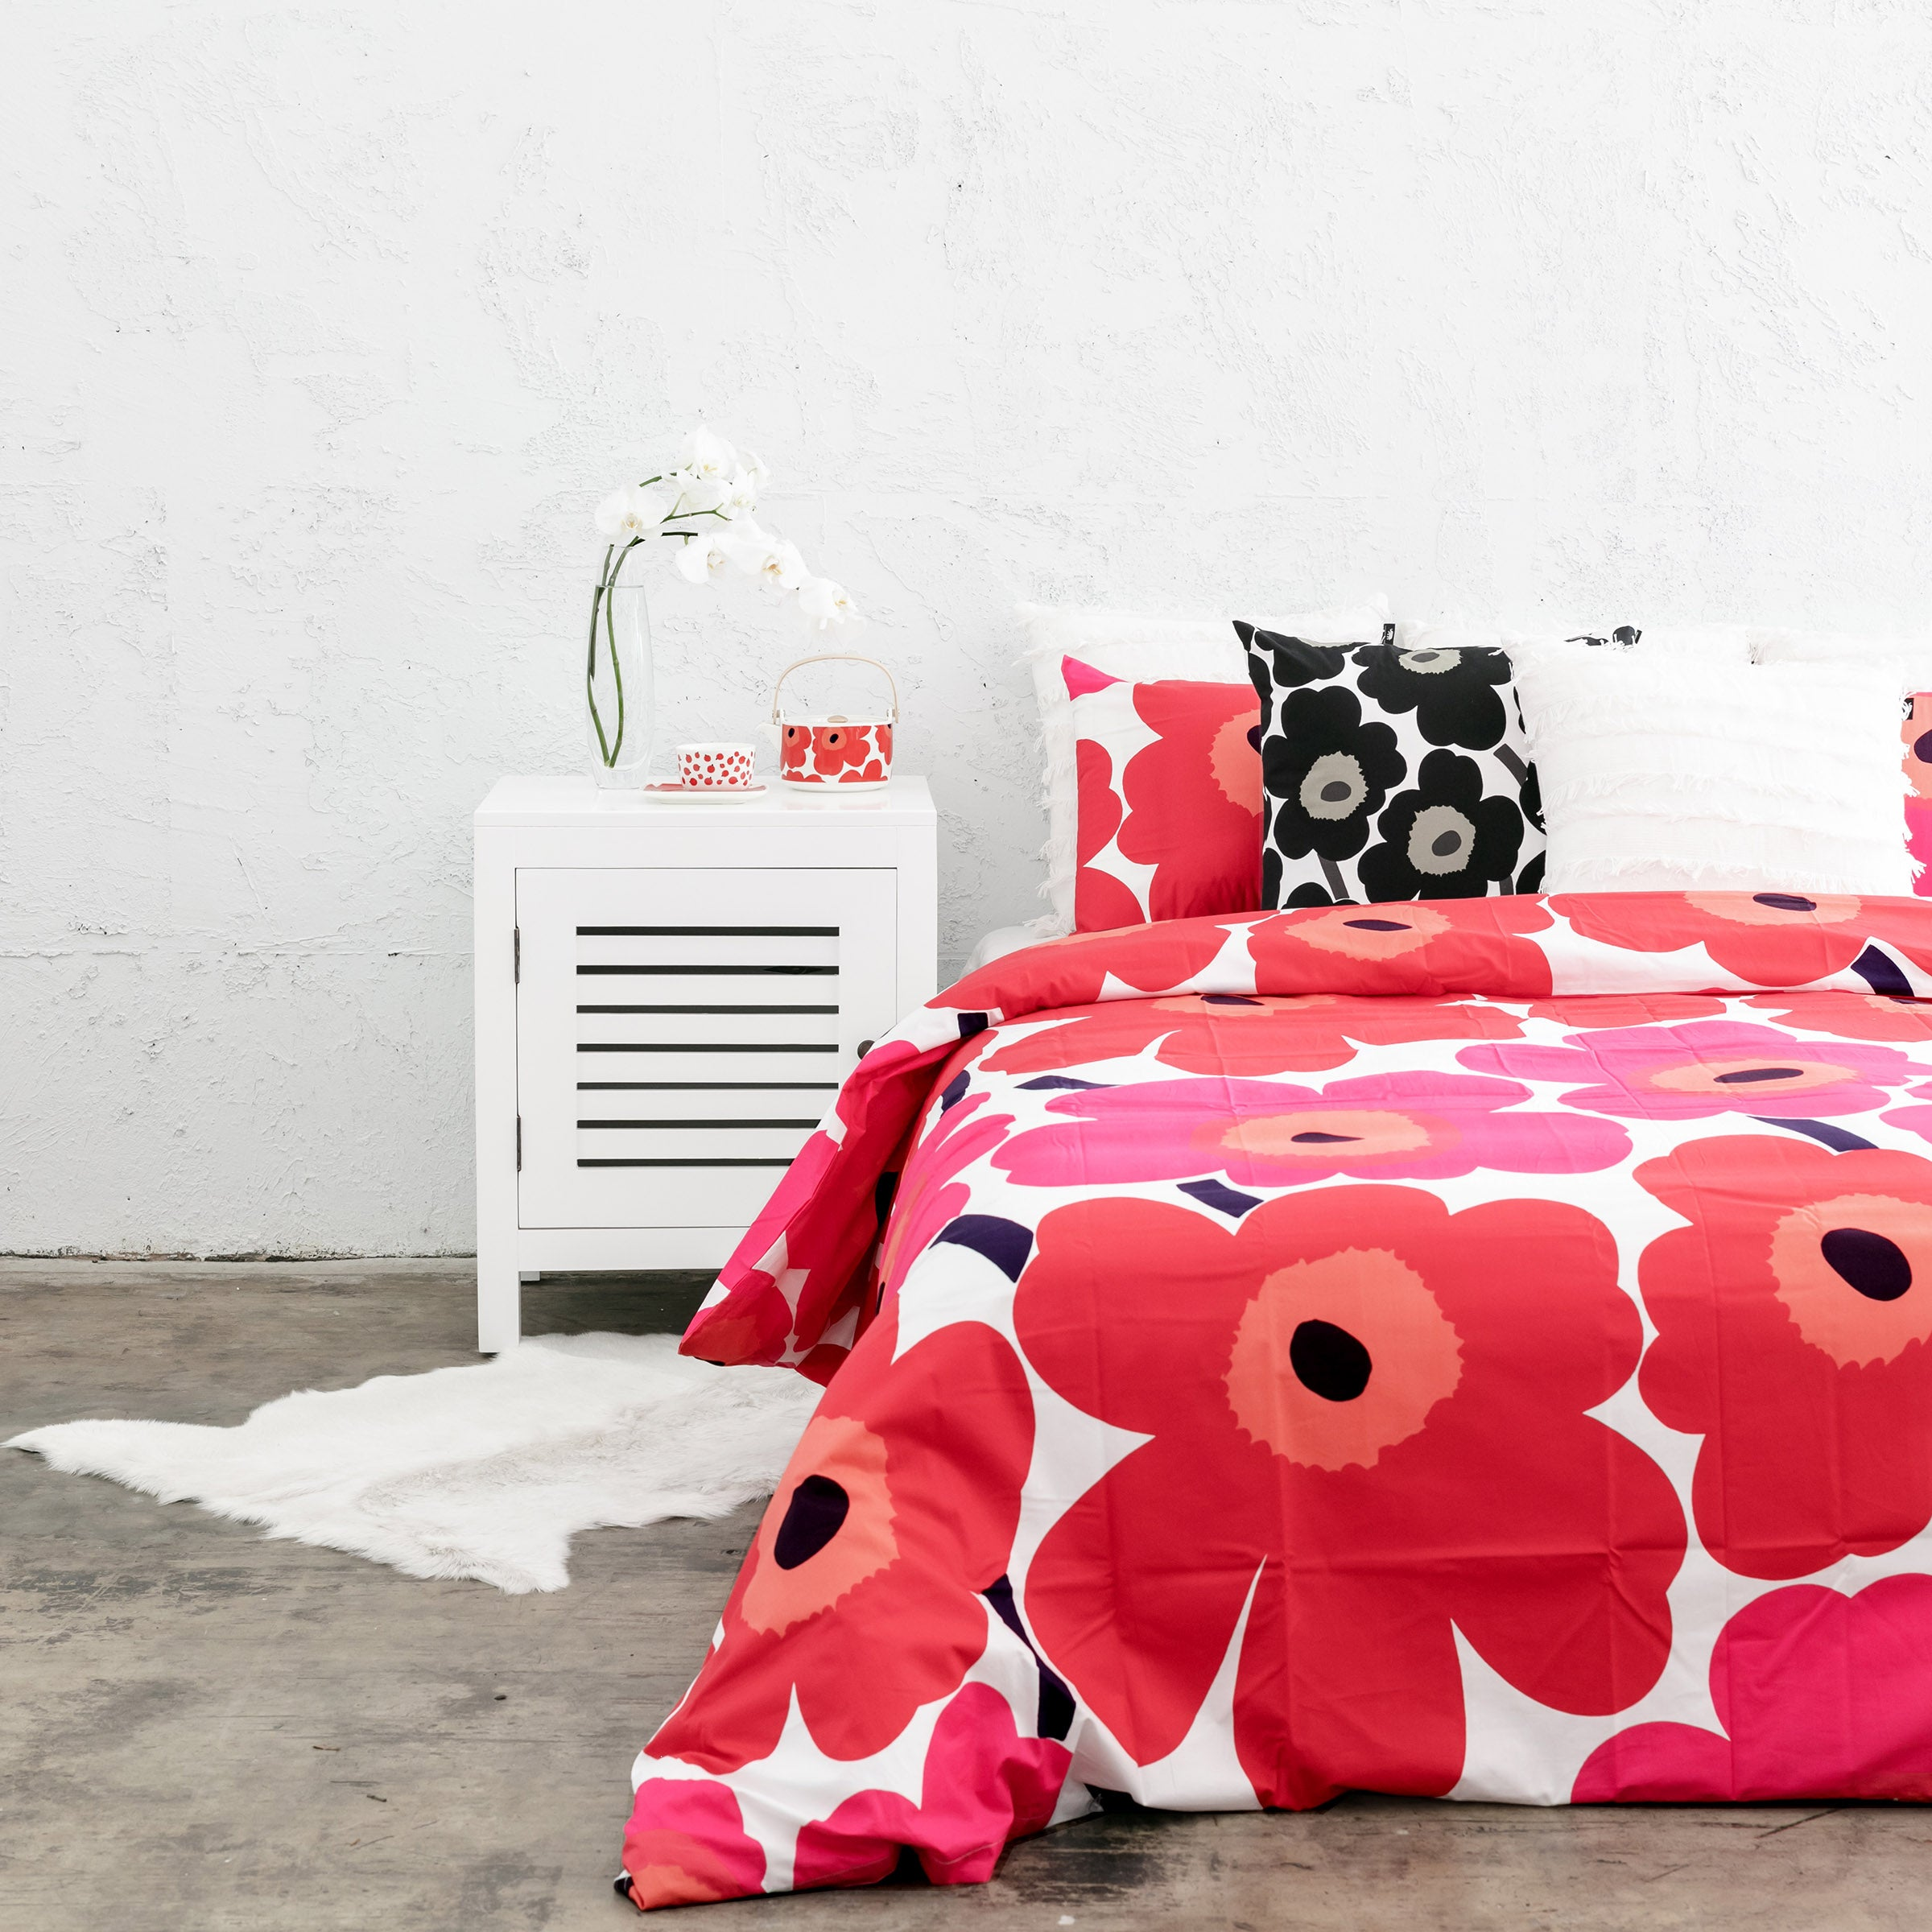 MARIMEKKO  |  UNIKKO PILLOW CASE  |  RED + PINK